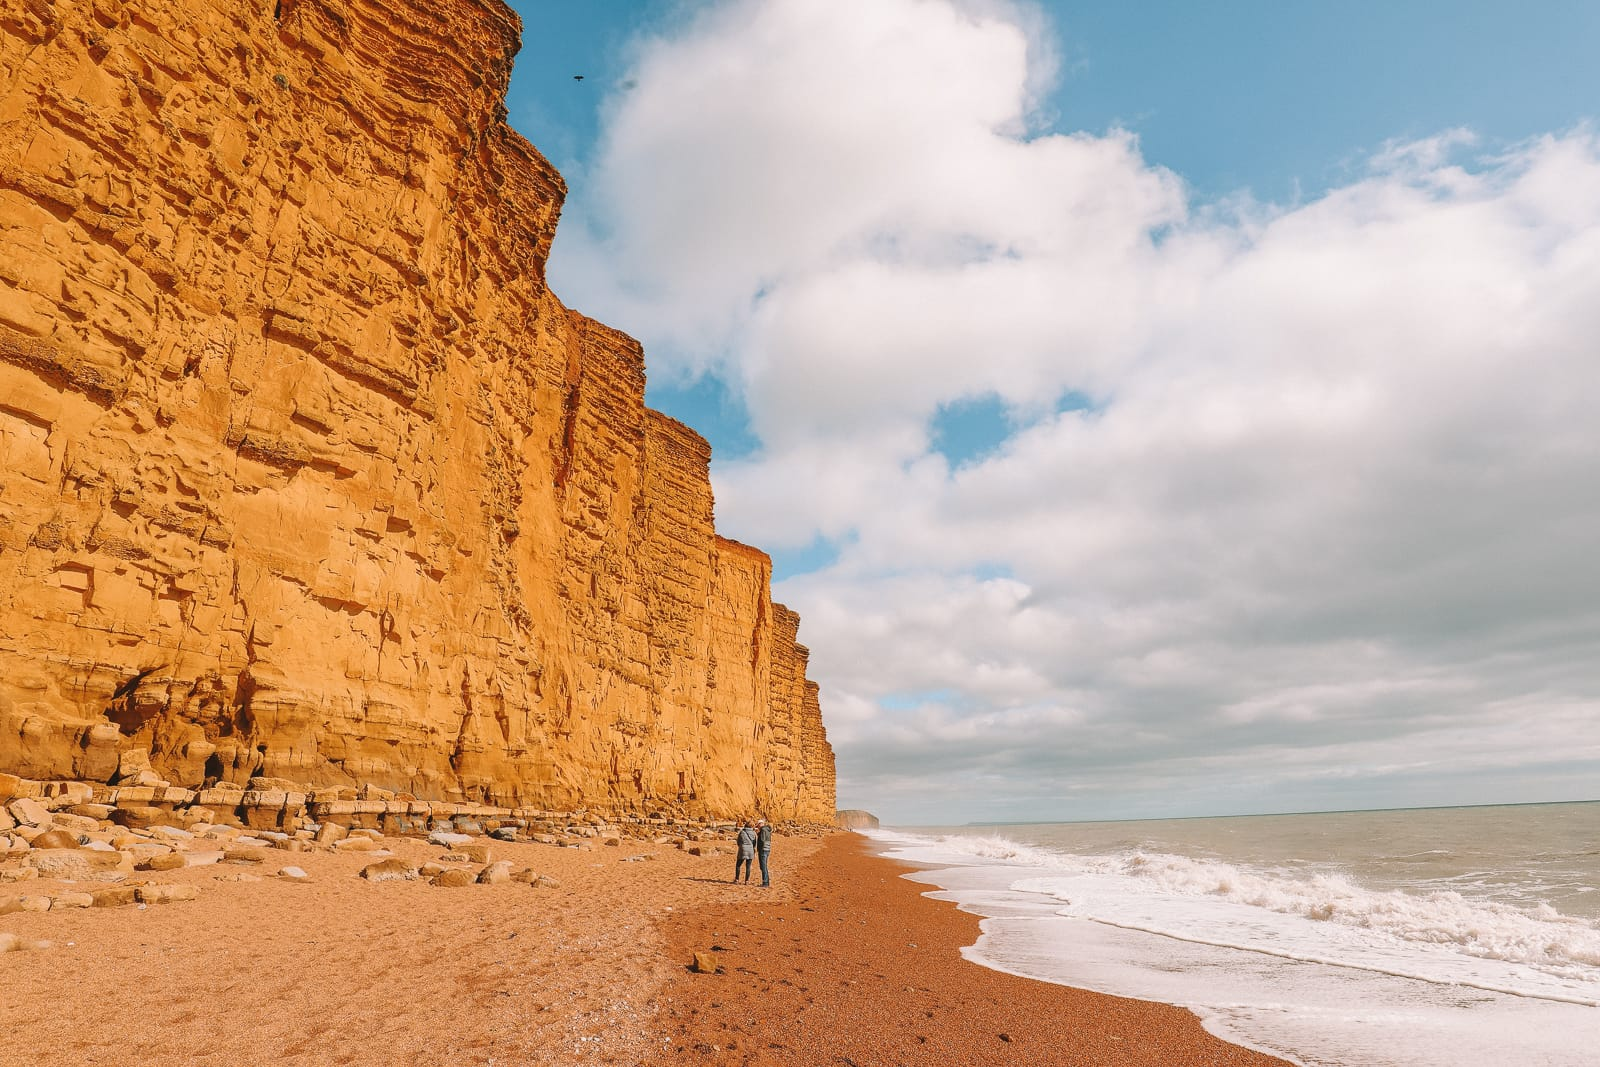 Searching For Dinosaurs And Fossils On The Jurassic Coast Of England (32)